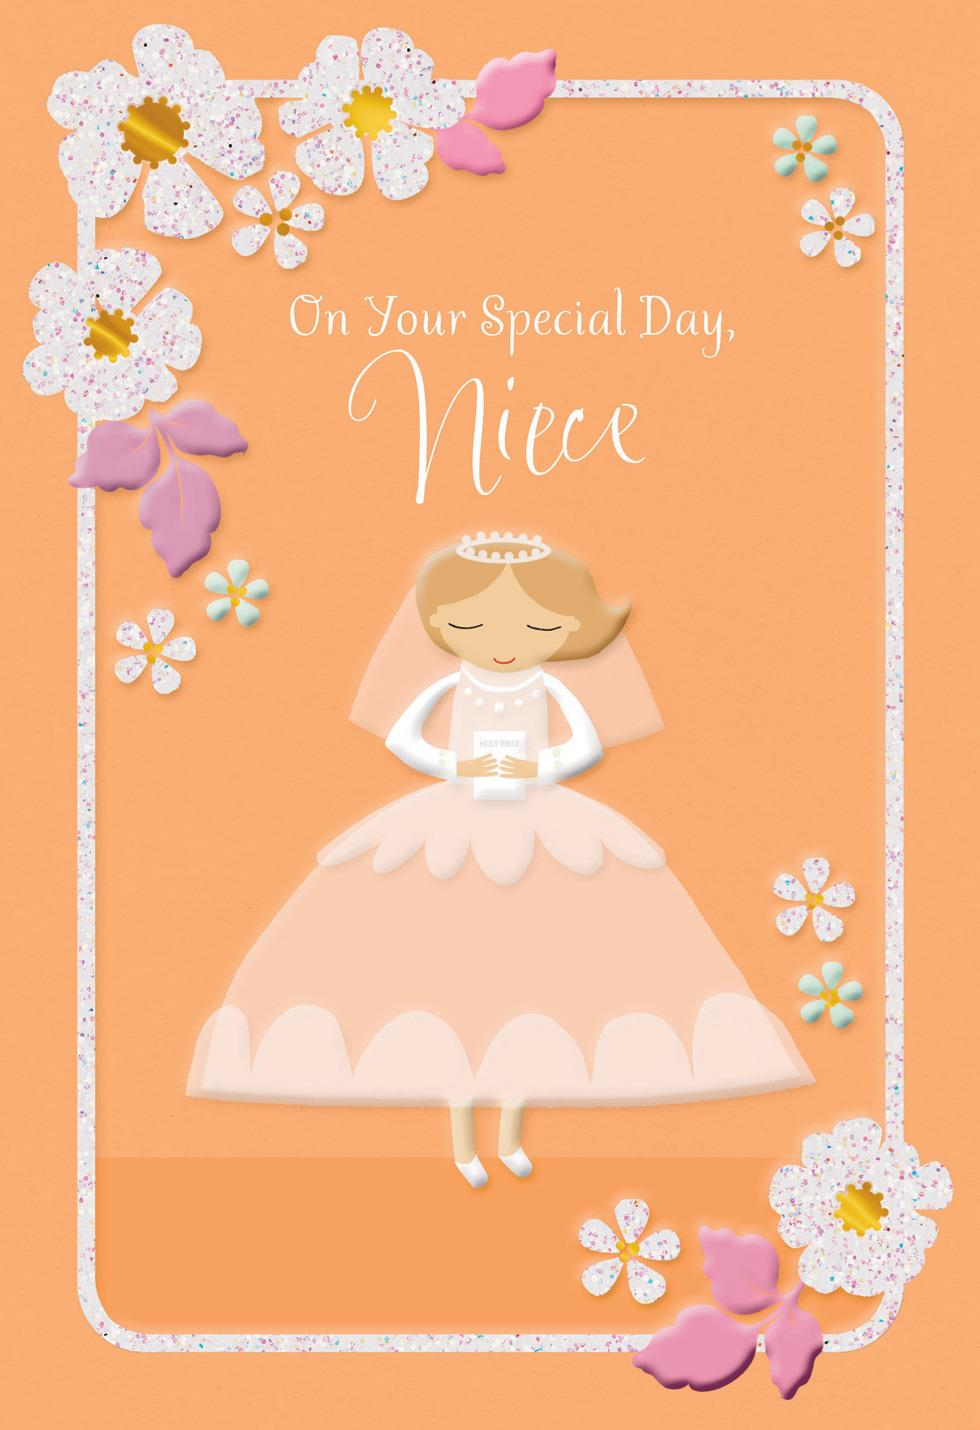 White dress and flowers first communion card for niece Hallmark flowers